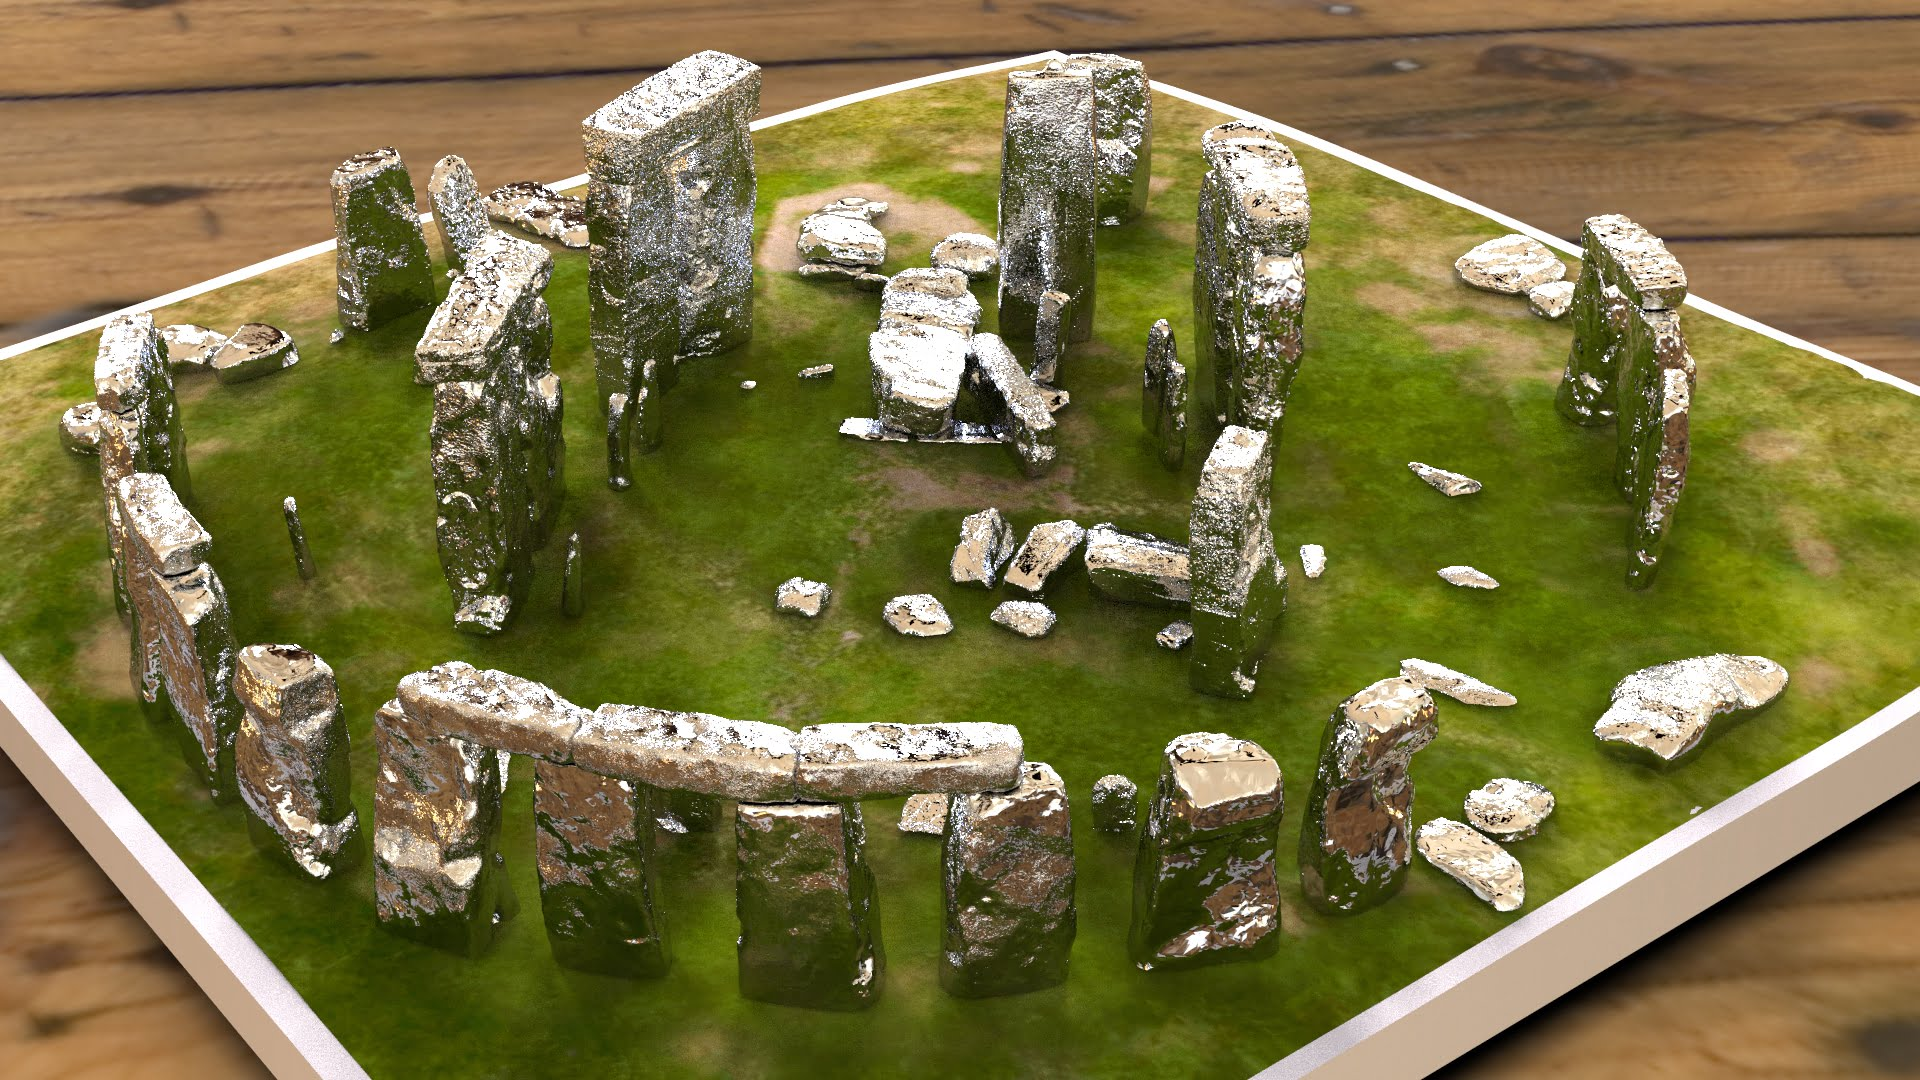 Buy Stonehenge Models: Silver Stonehenge replica models at 200th scale 004 2  - 200th scale pick n mix -